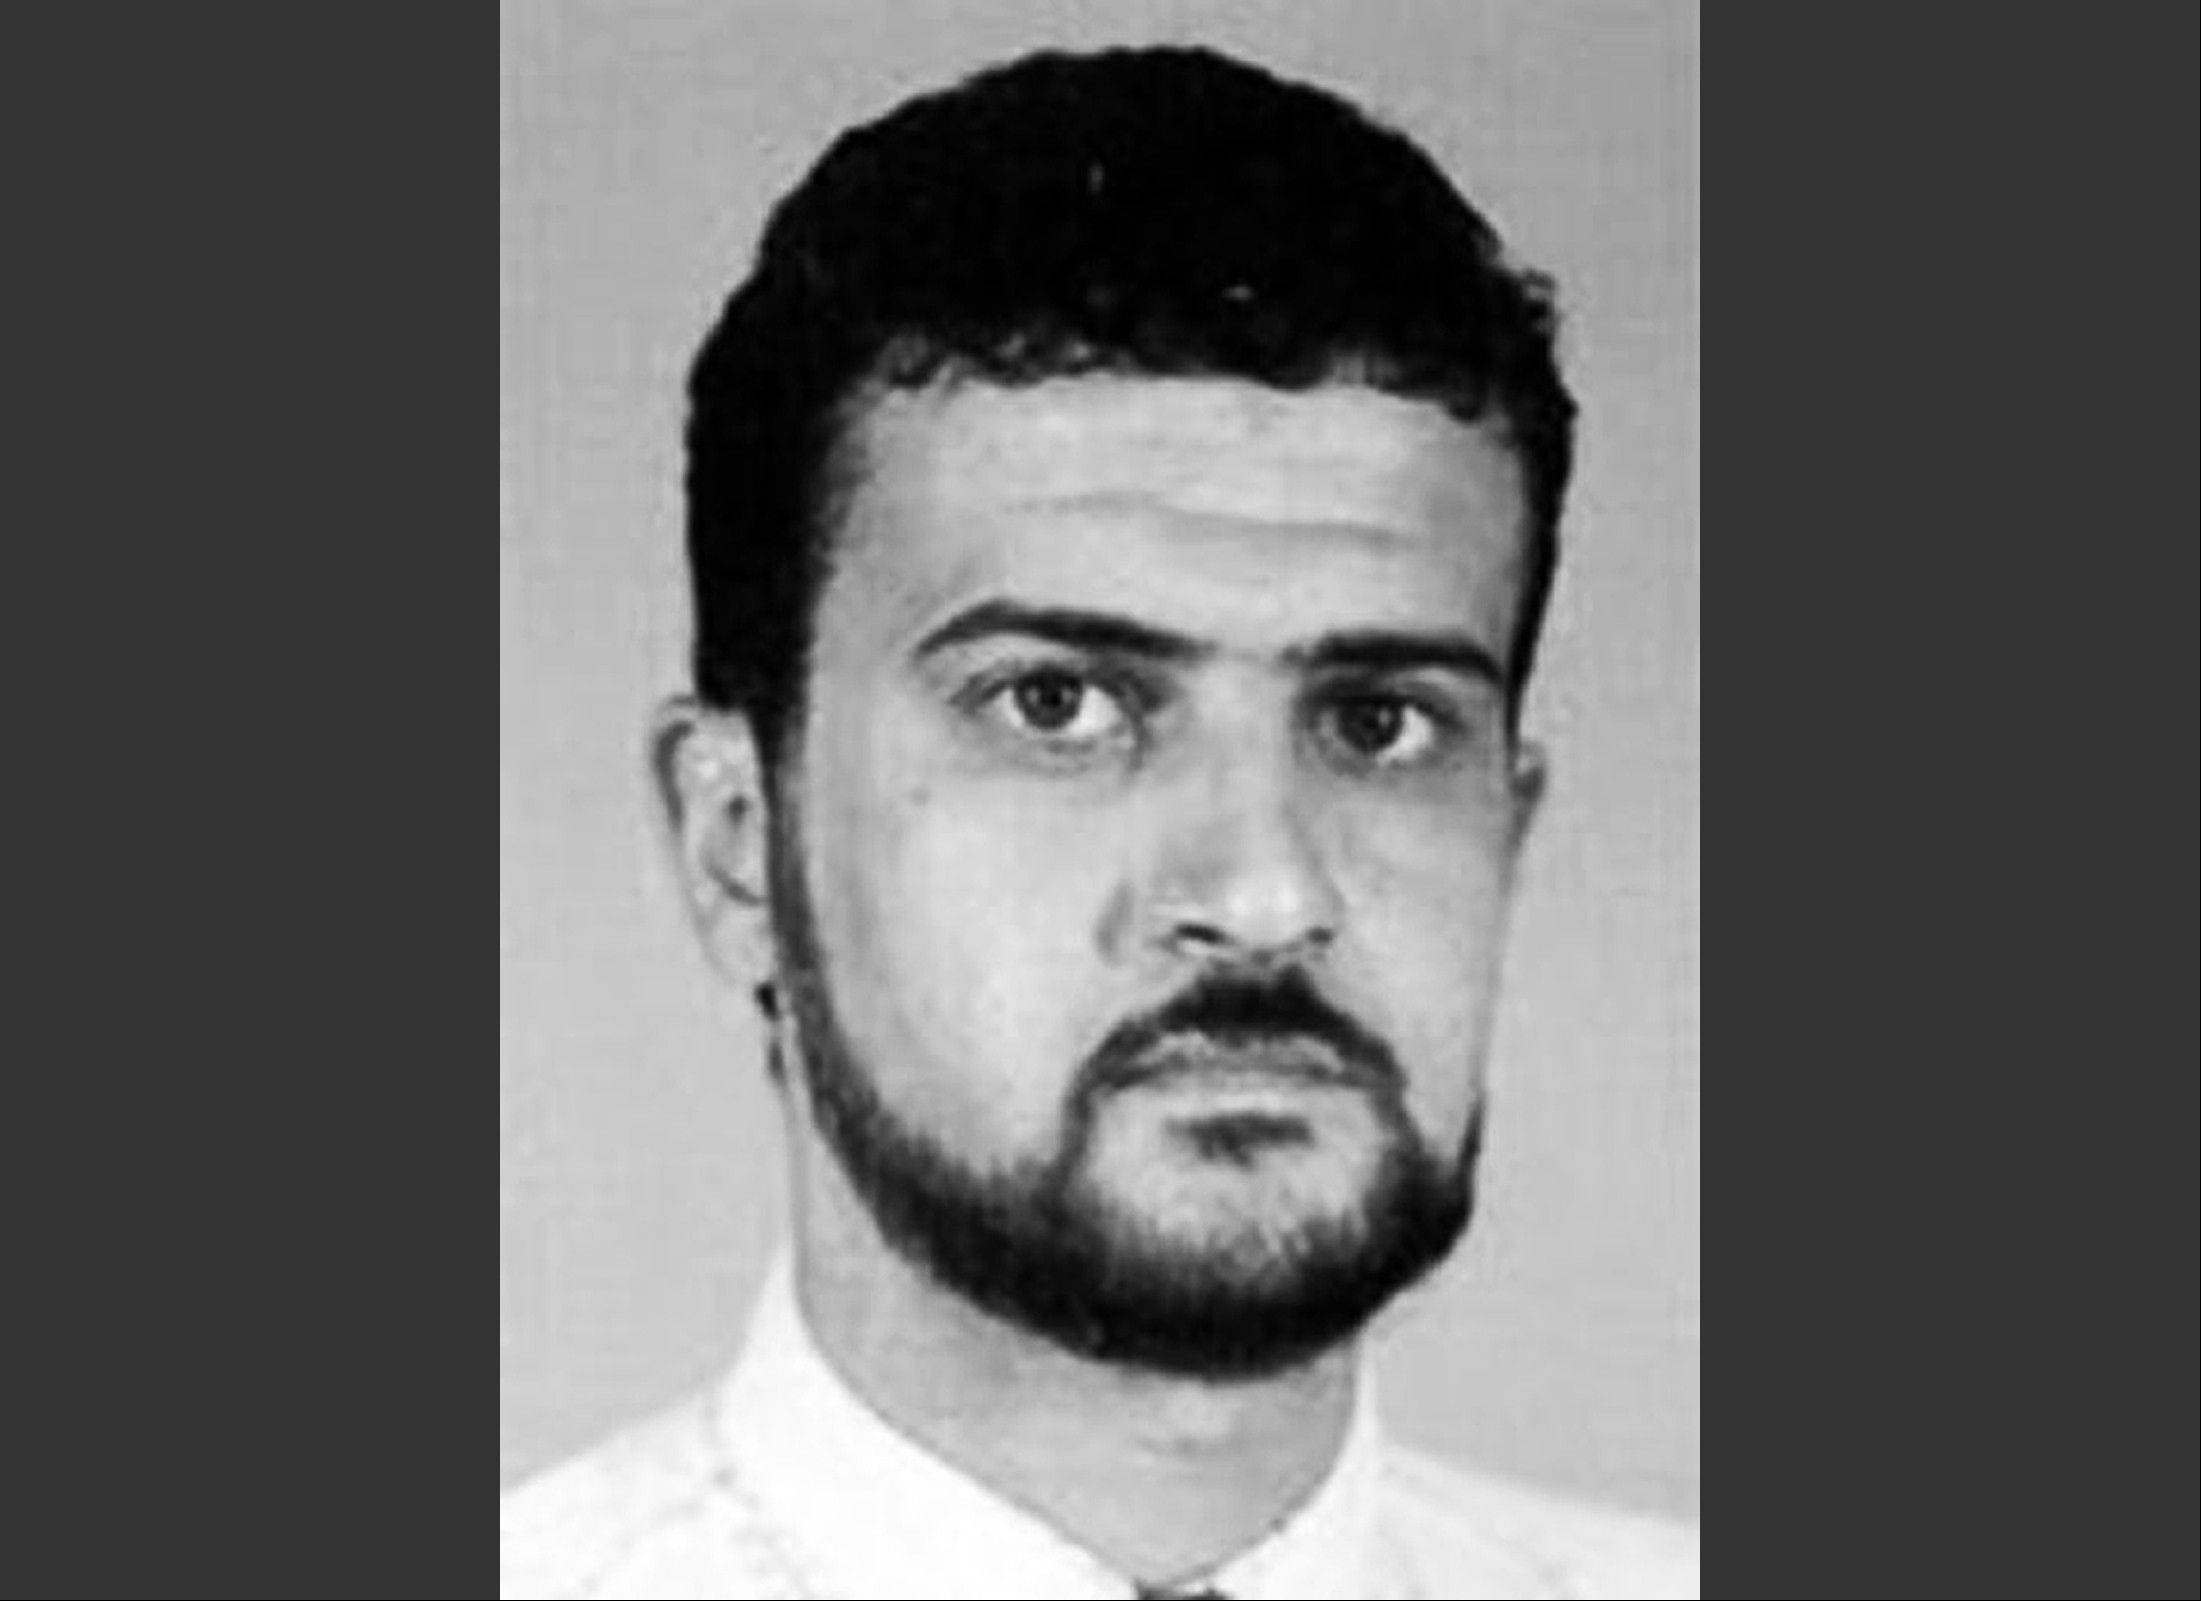 Al-Qaida leader Abu Anas al-Libi, who was captured in an Oct. 5, 2013, raid and held aboard a U.S. warship, is now in the United States. He is expected to stand trial over whether he helped plan and conduct surveillance for the bombings of U.S. embassies in Africa in 1998.